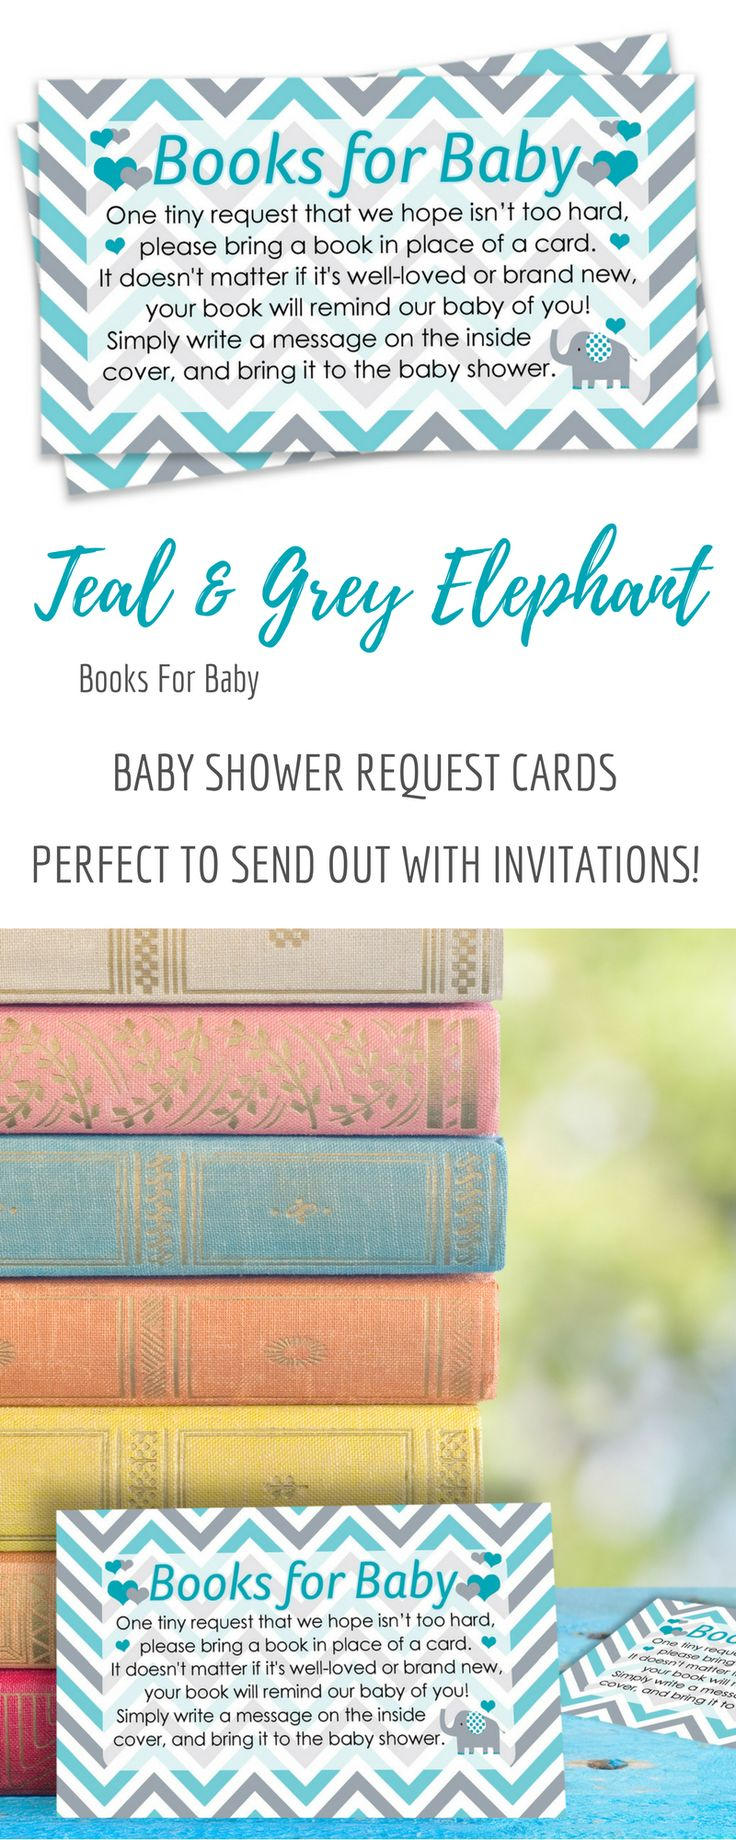 Books for Baby Request Cards - for Up to 20 Guests.TheseTeal Blueand Gray Elephant ThemedBaby Books Request Cards are perfect tosend with invitationsfor yourBoyBaby Shower. #itsaboy #elephantbabyshower #babyshower #boybabyshower #booksforbaby